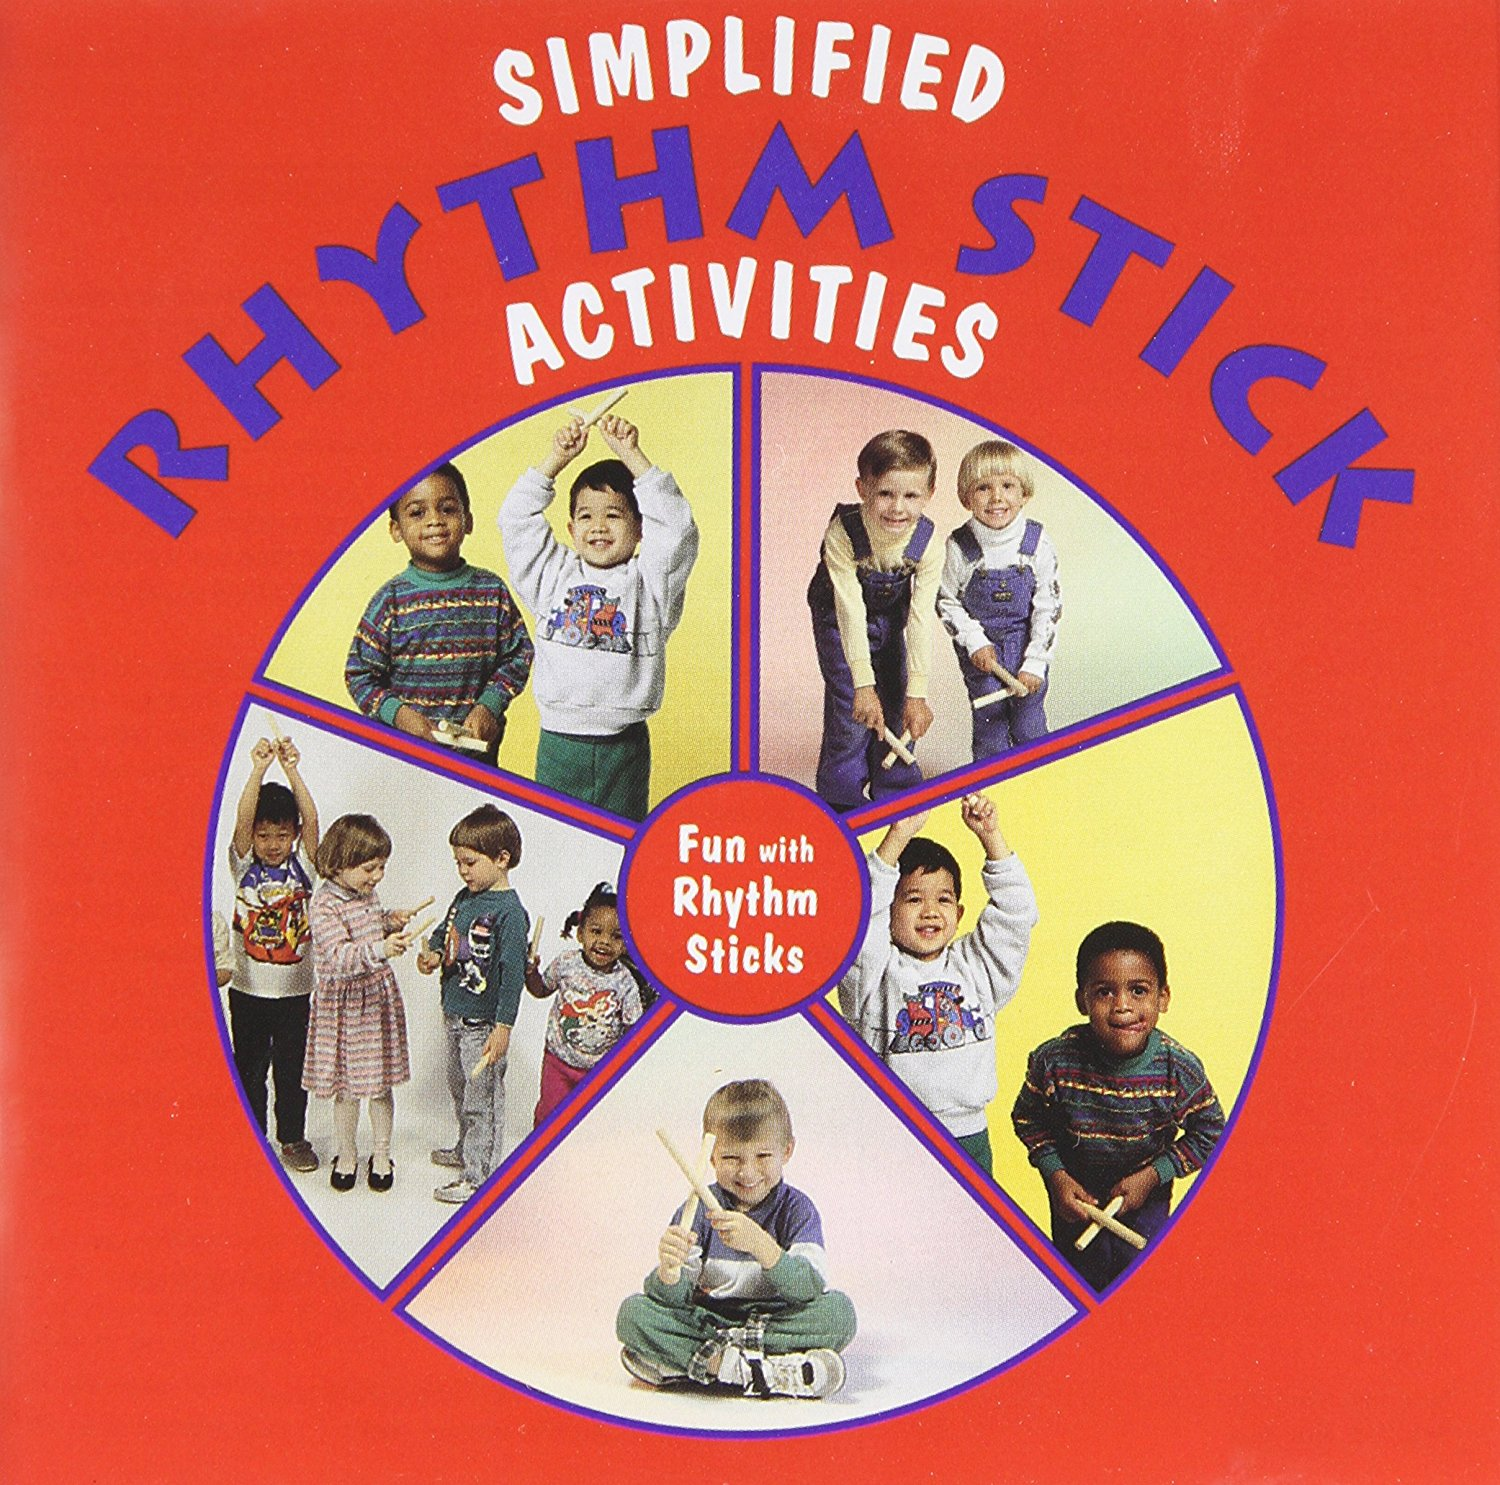 Simplified Rhythm Stick Activities - Tap Your Way To Fun Cd